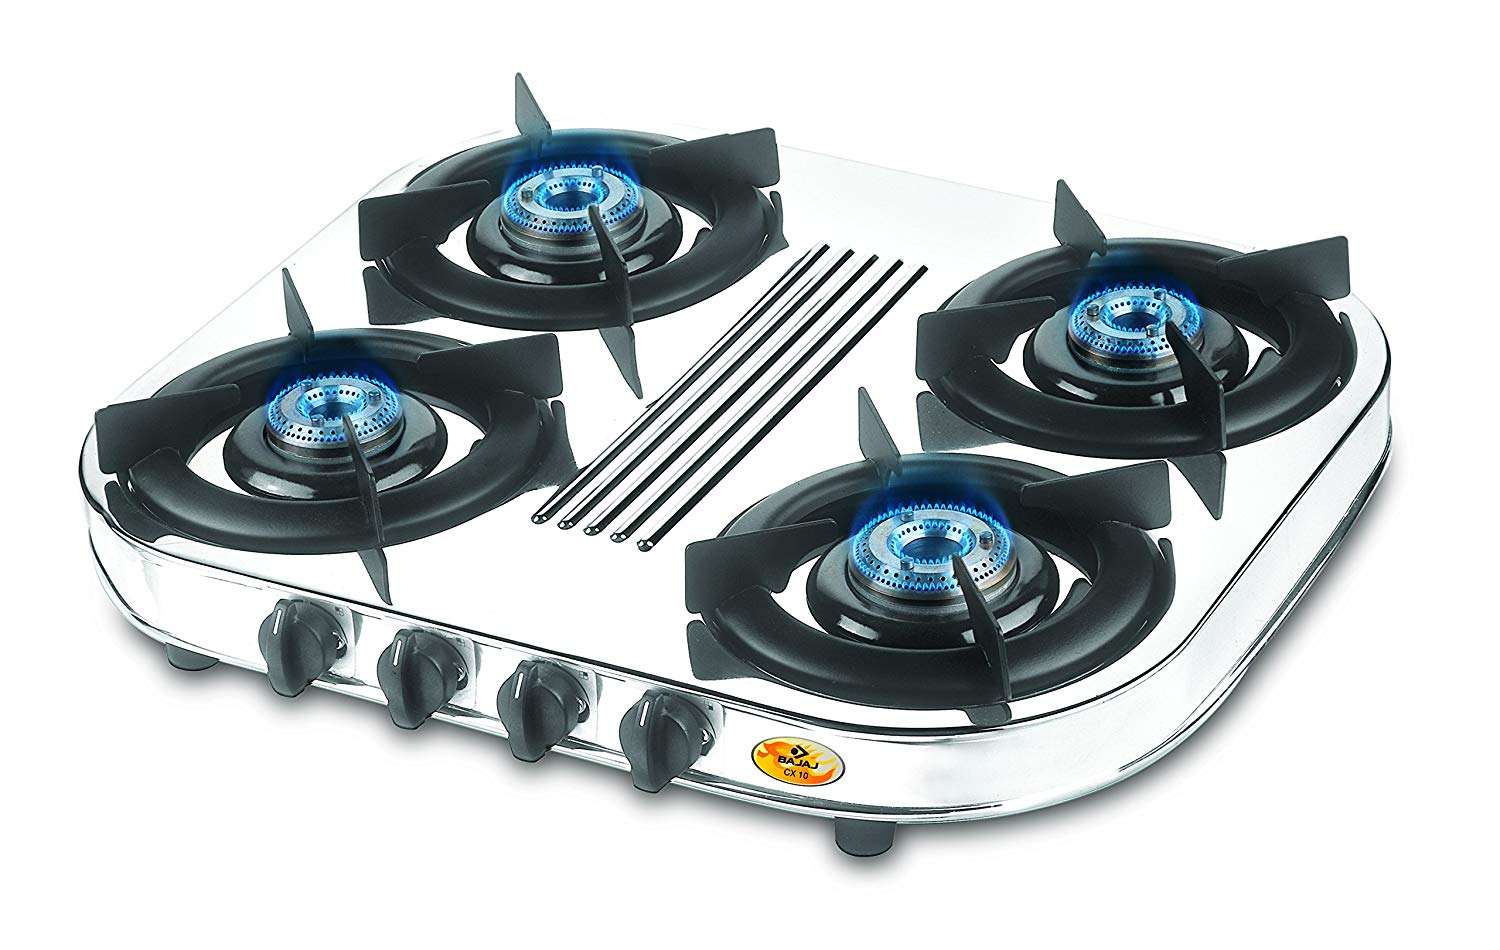 Bajaj Majesty Stainless Steel CX 10 D 4-Burner Cooktop Silver get best offers deals free and coupons online at buythevalue.in